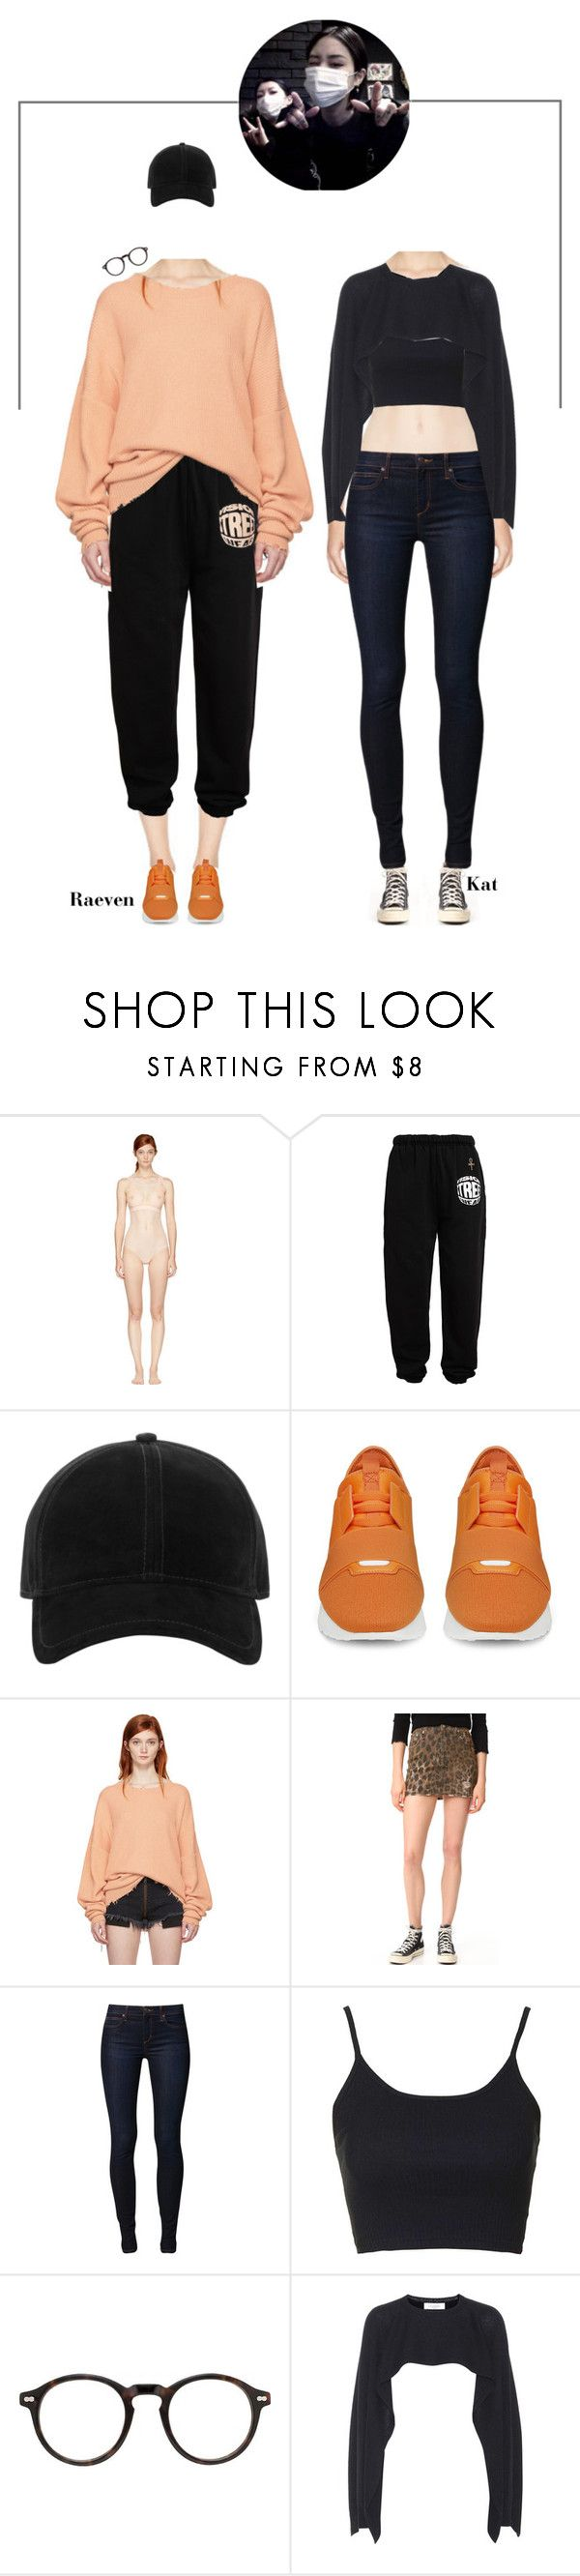 """""""Kat & Raeven ( S'nD ) • Bloodstream • Dance Practice"""" by purrfectas ❤ liked on Polyvore featuring STELLA McCARTNEY, Vision Street Wear, rag & bone, Balenciaga, Unravel, R13, Joe's Jeans, Topshop, Moscot and Valentino"""